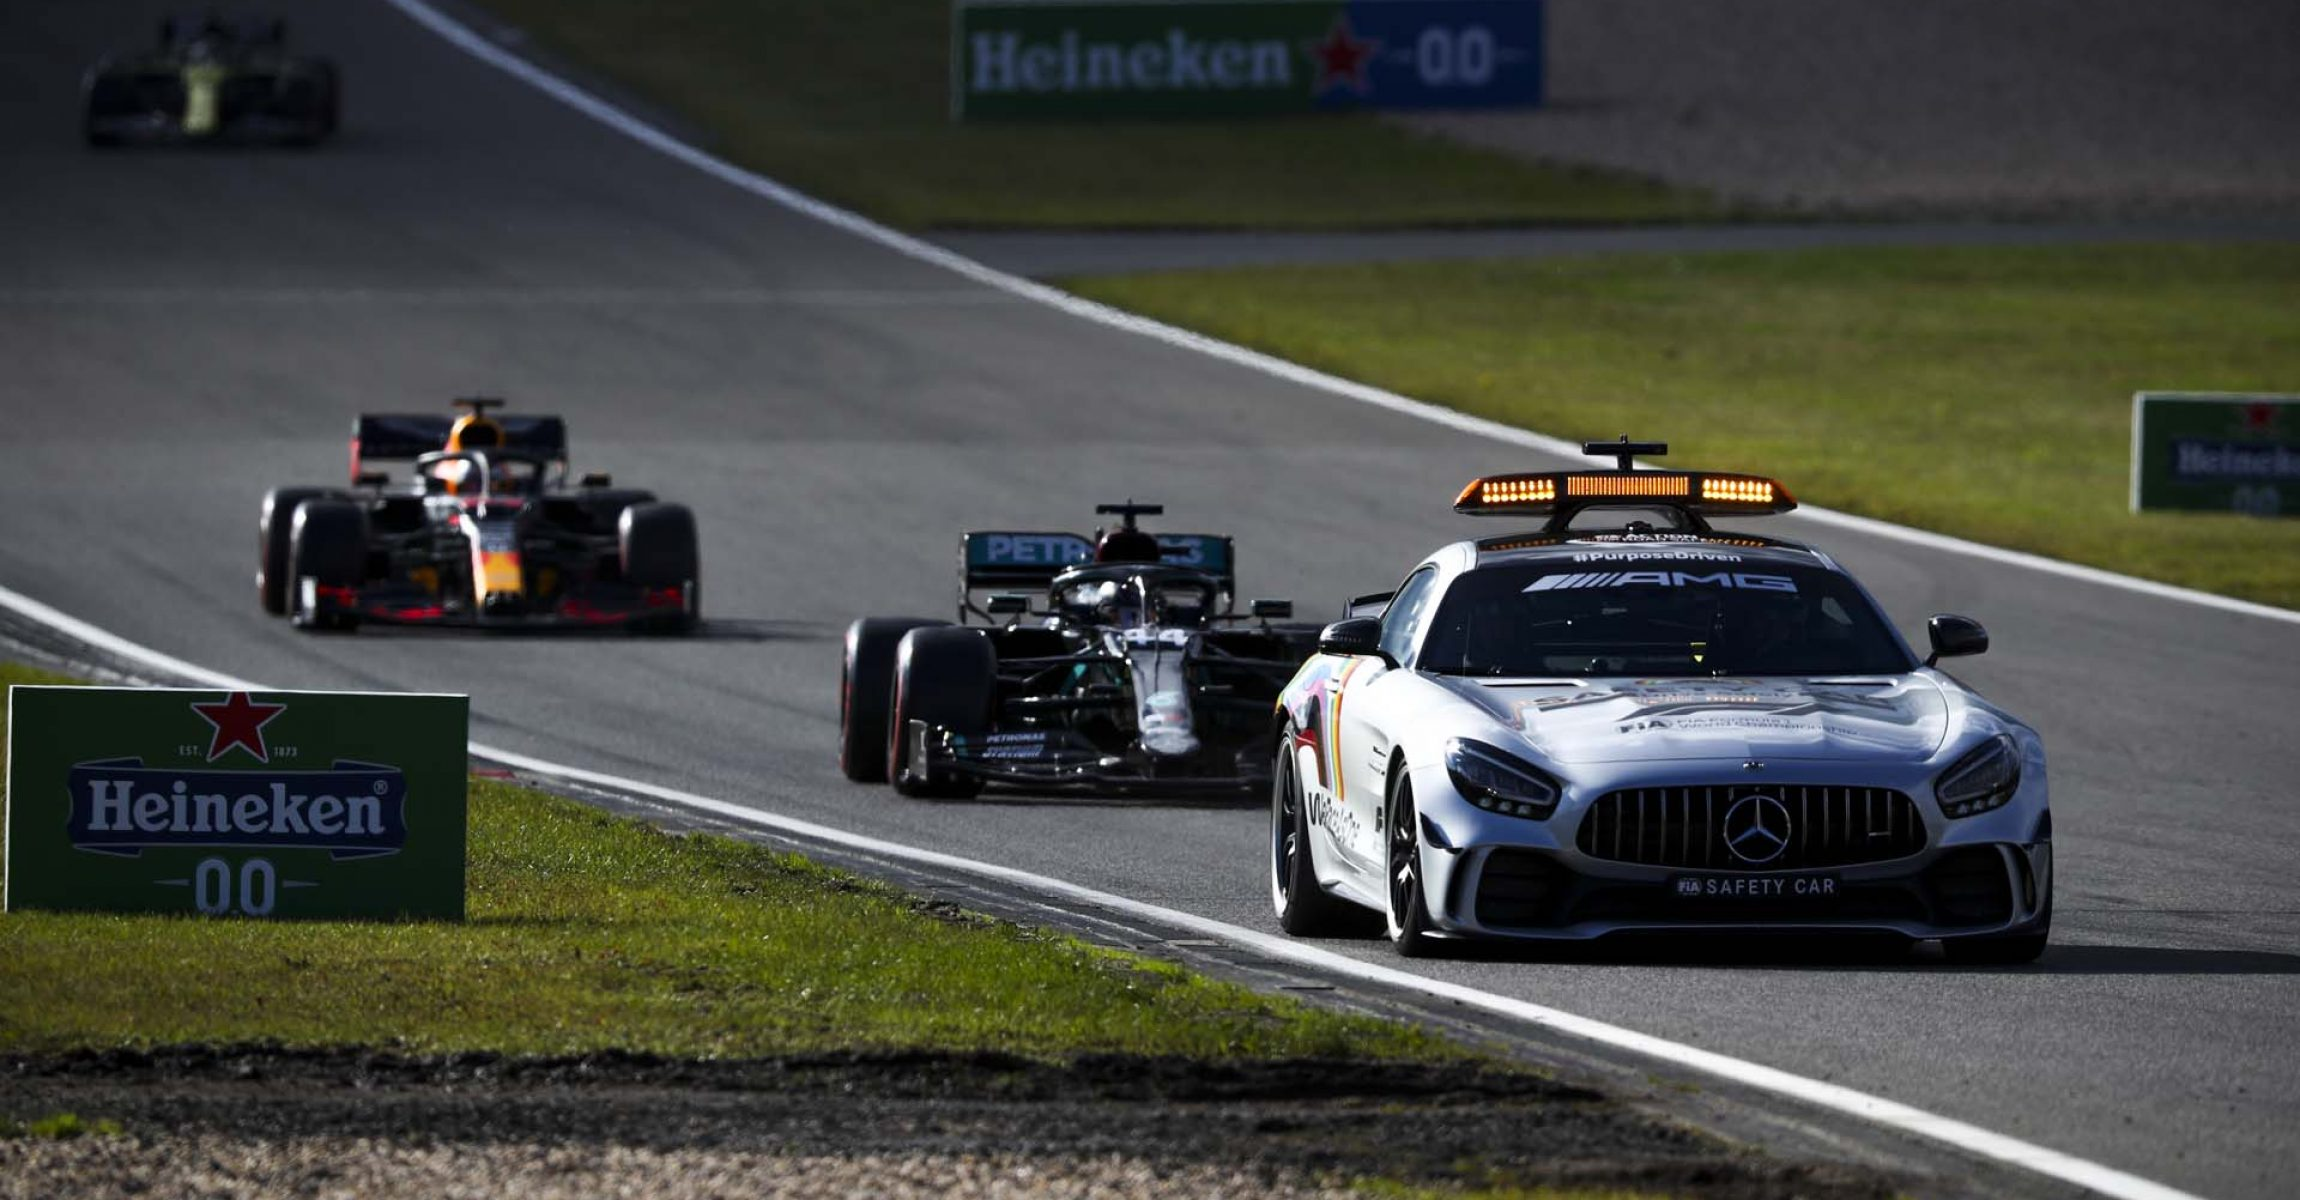 2020 Eifel Grand Prix, Sunday - LAT Images Safety Car Lewis Hamilton Max Verstappen